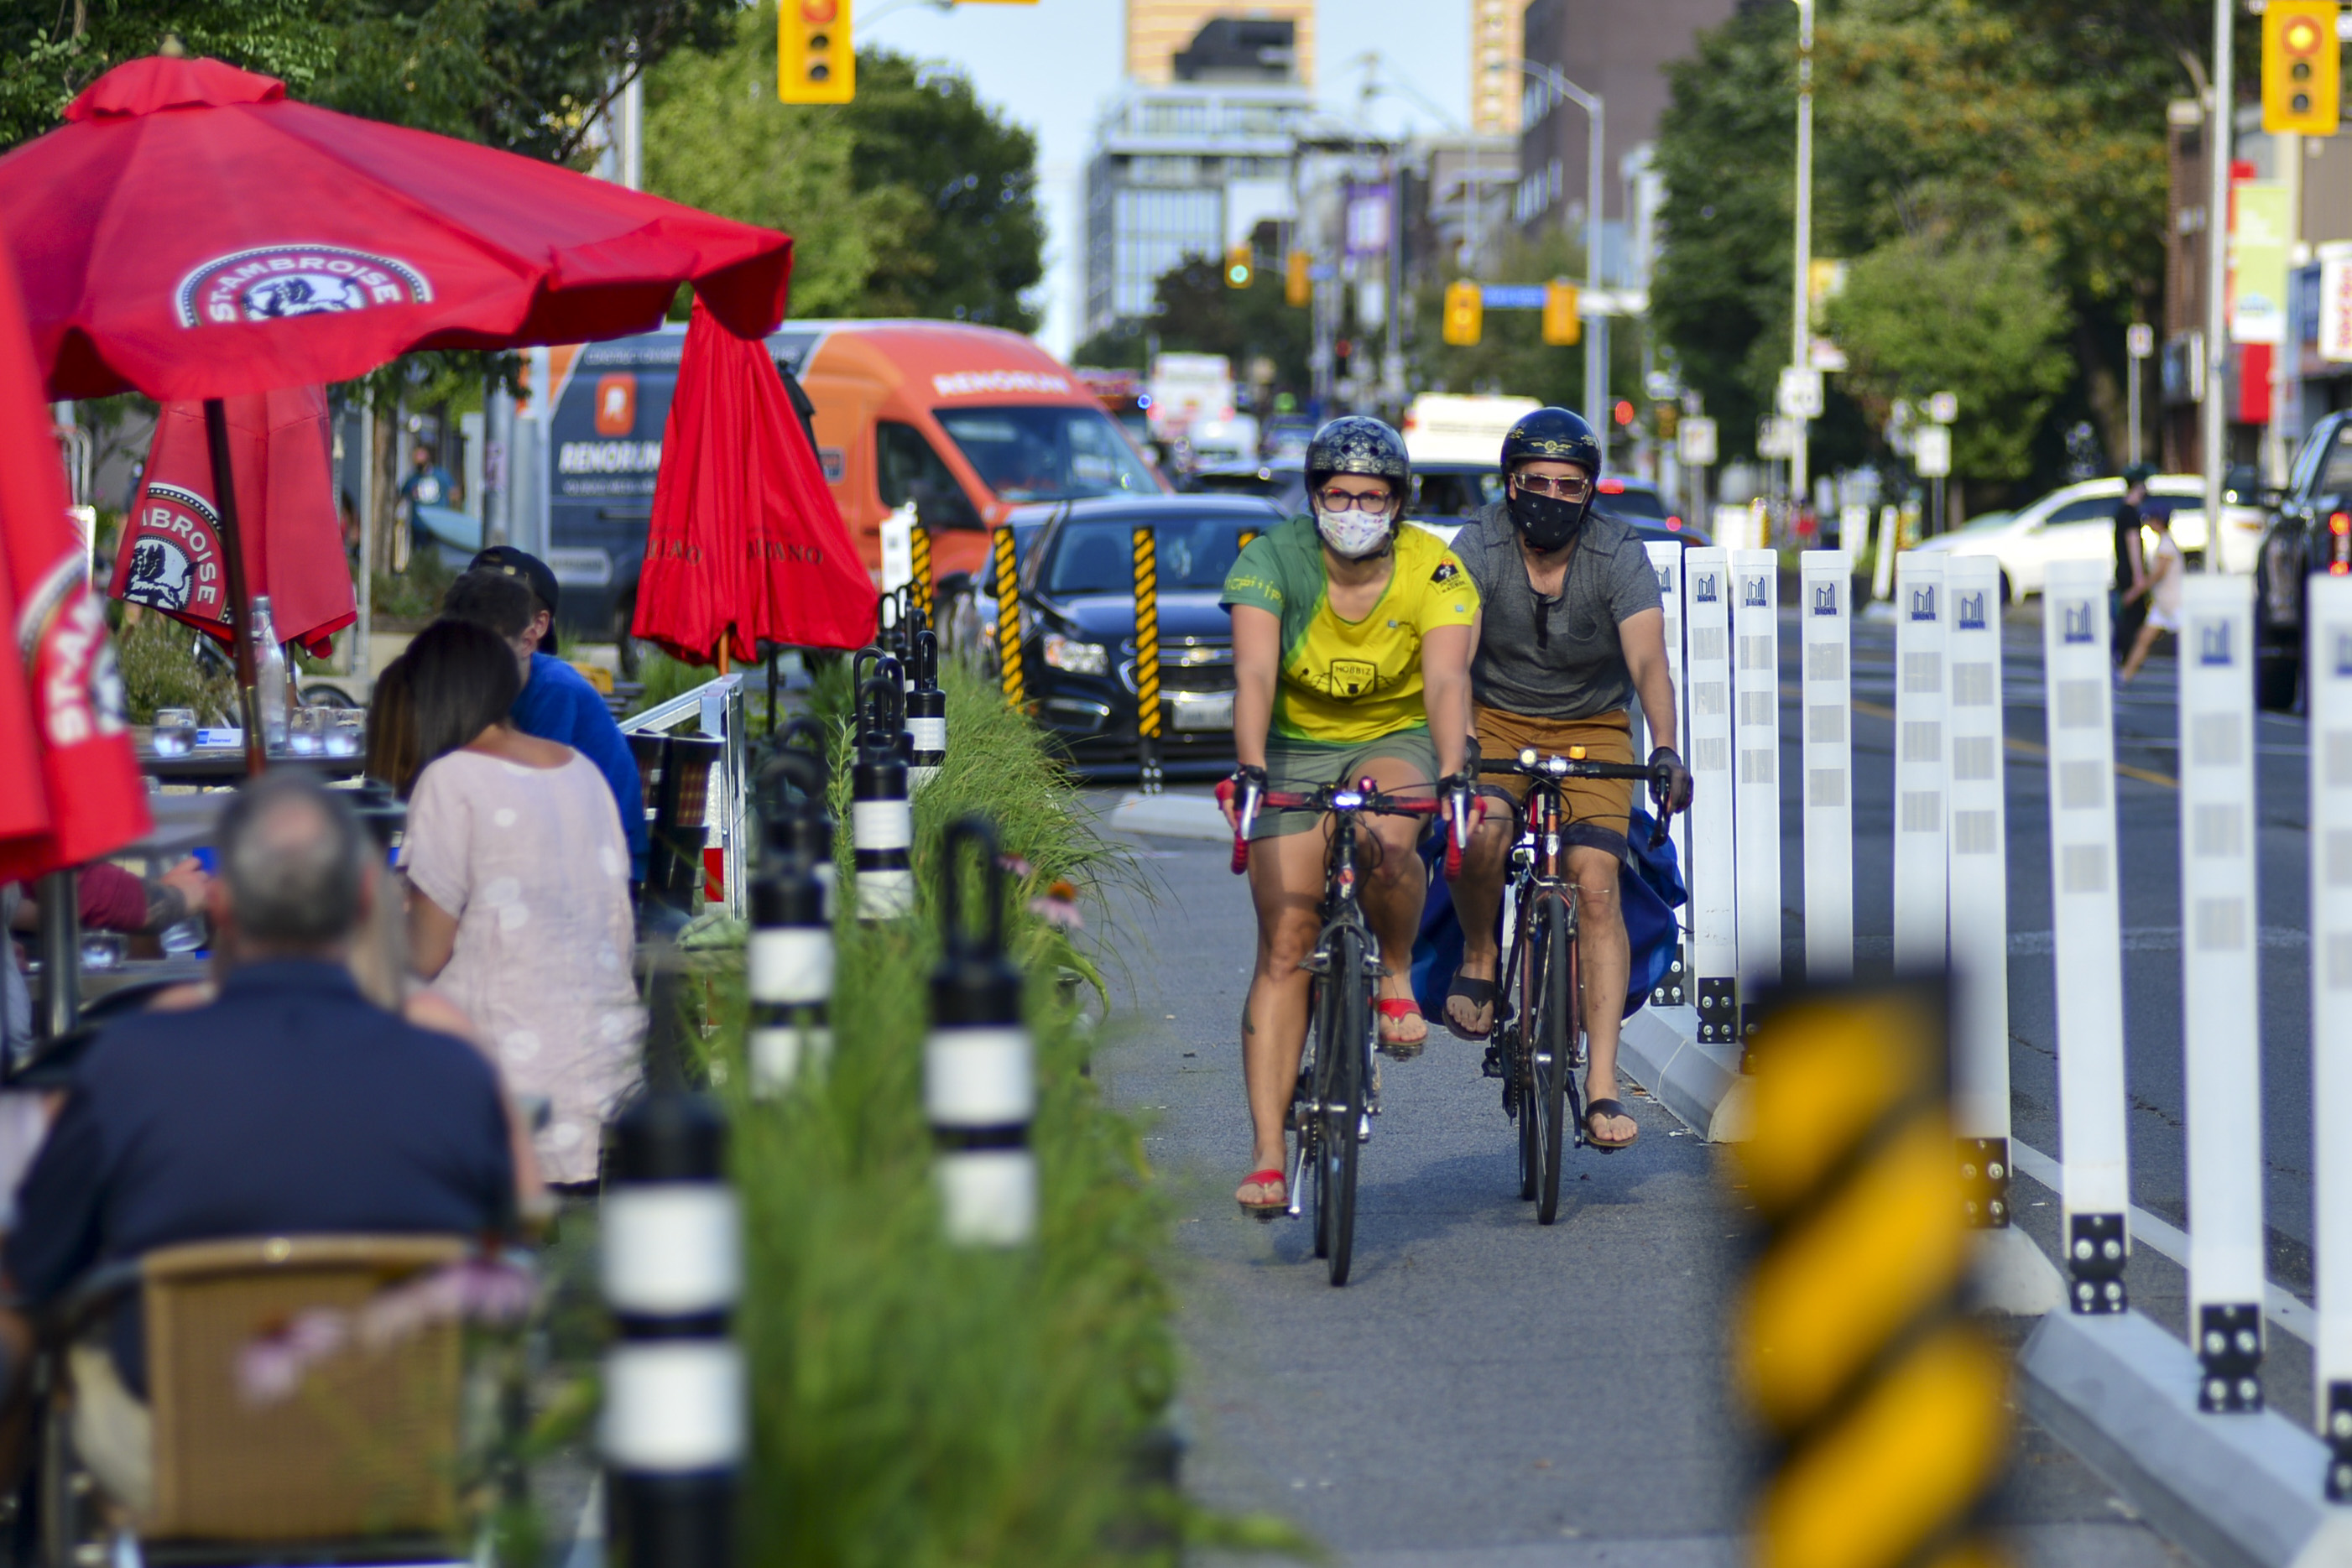 People wearing masks ride bikes past a patio.